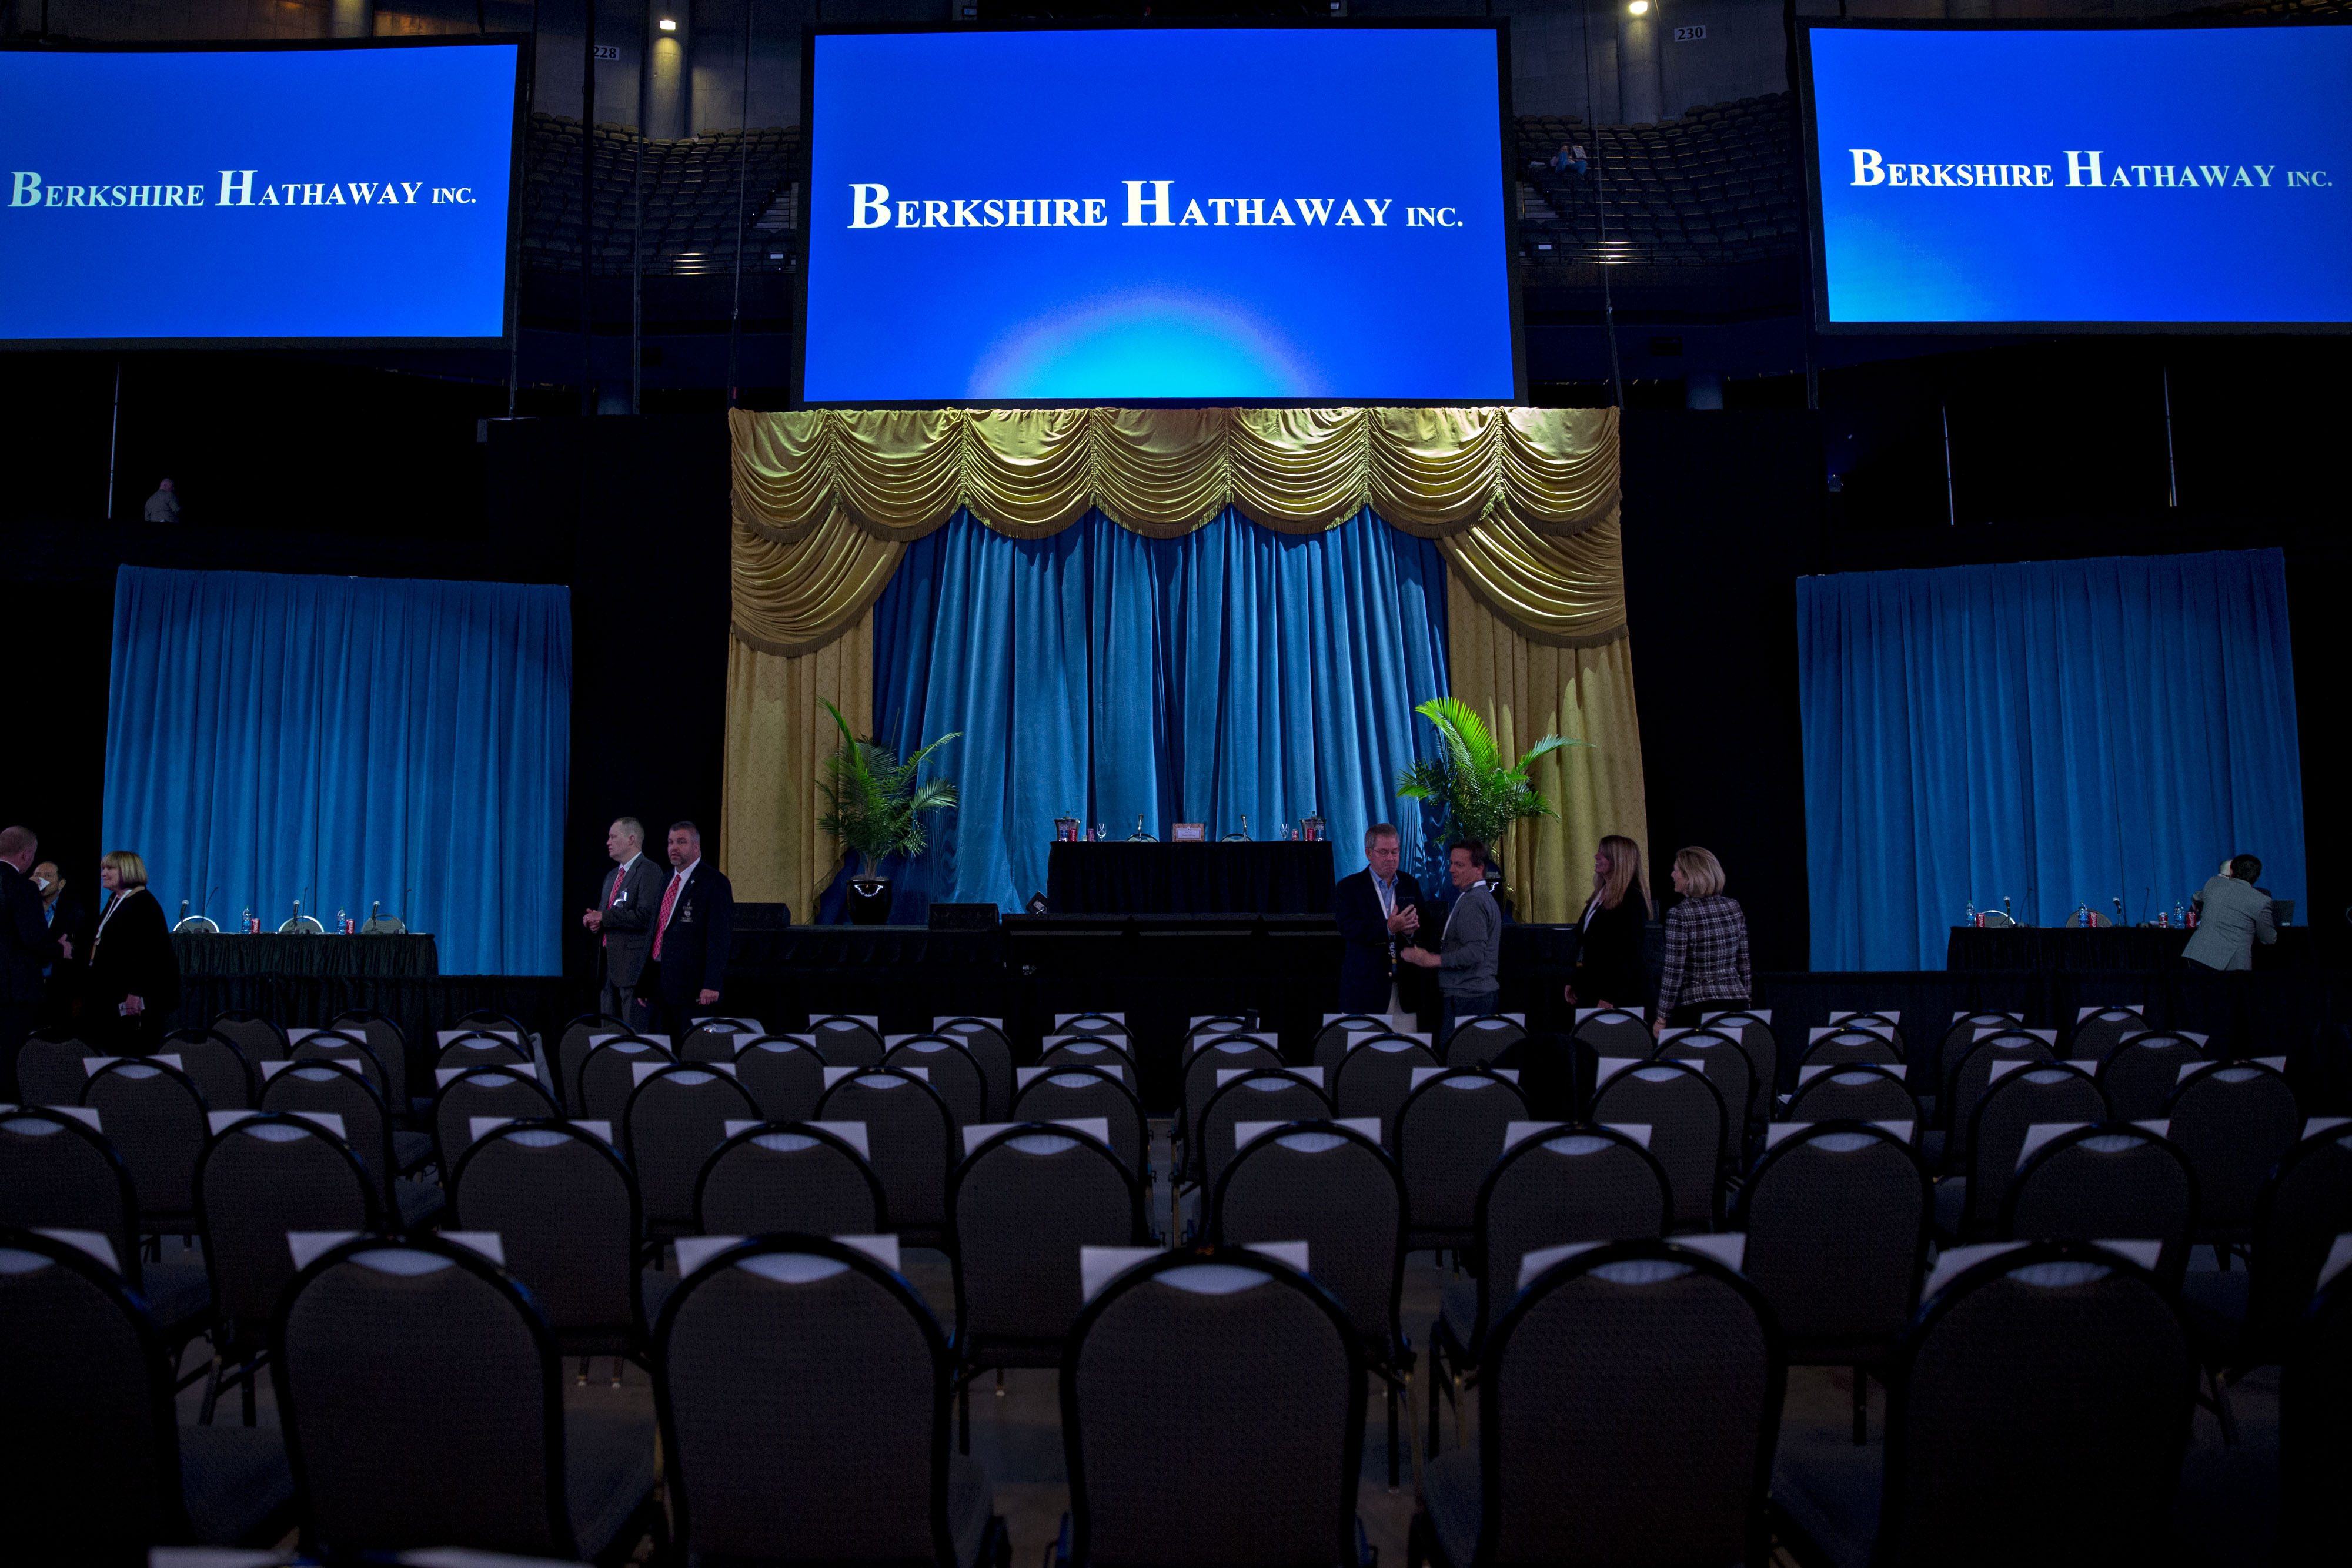 Berkshire Hathaway Inc. Annual General Meeting